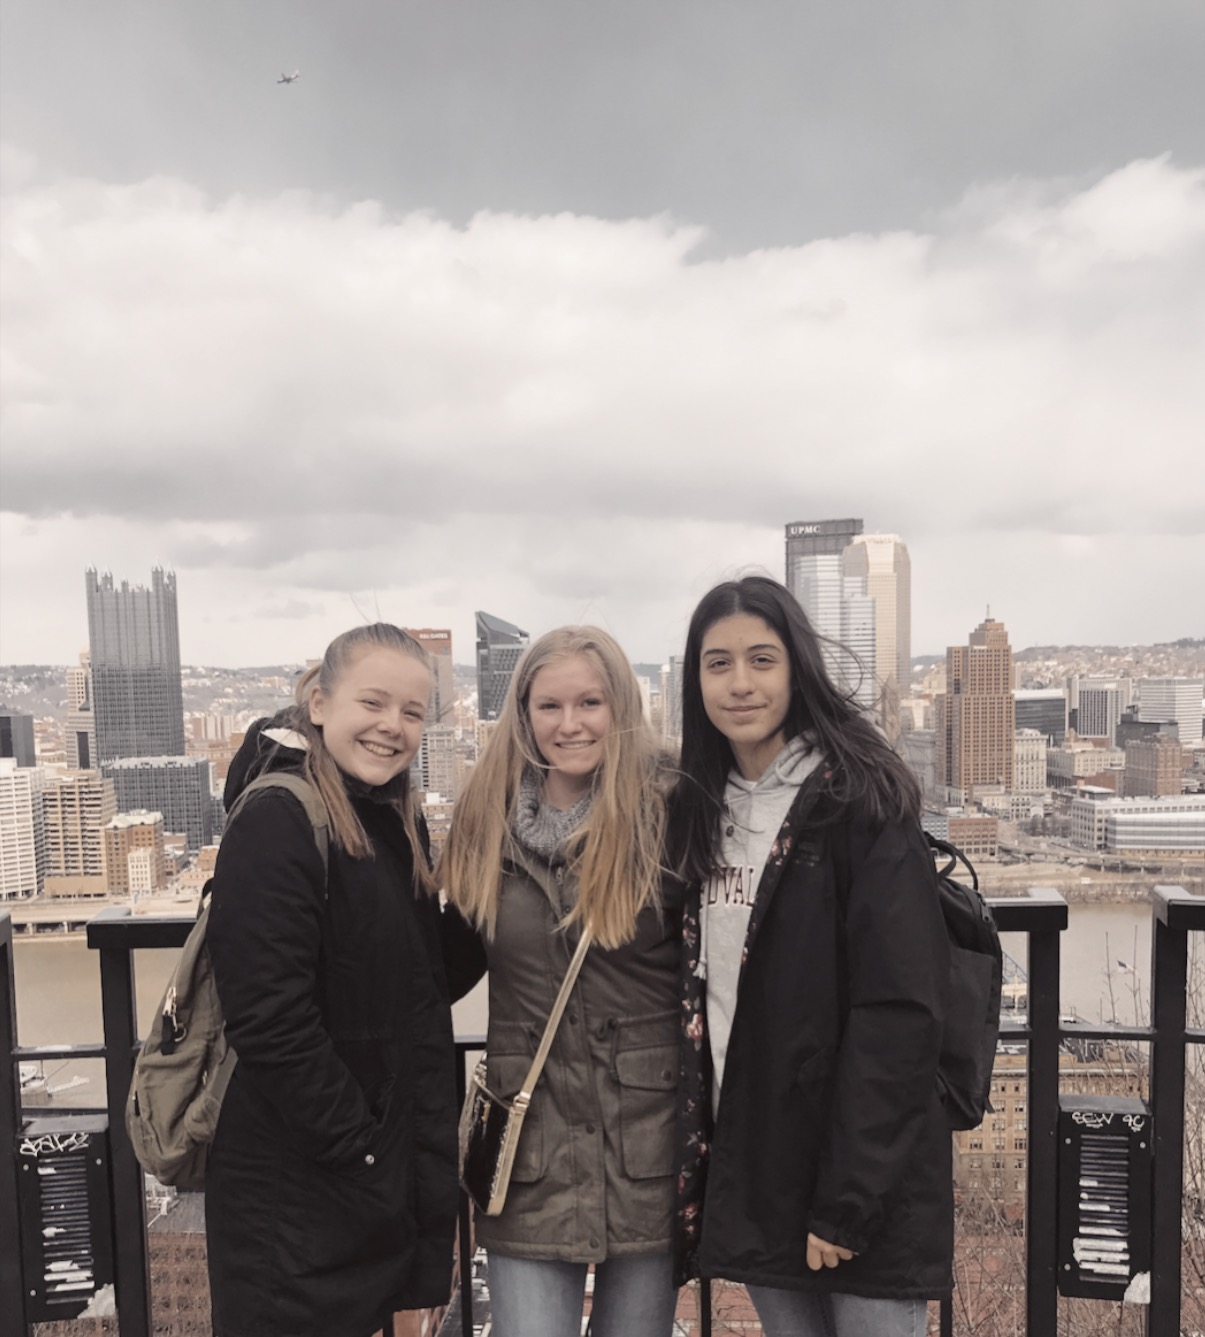 Ninth grader, Margaret Keating, takes her Austrian exchange students to see Pittsburgh as part of their visit.